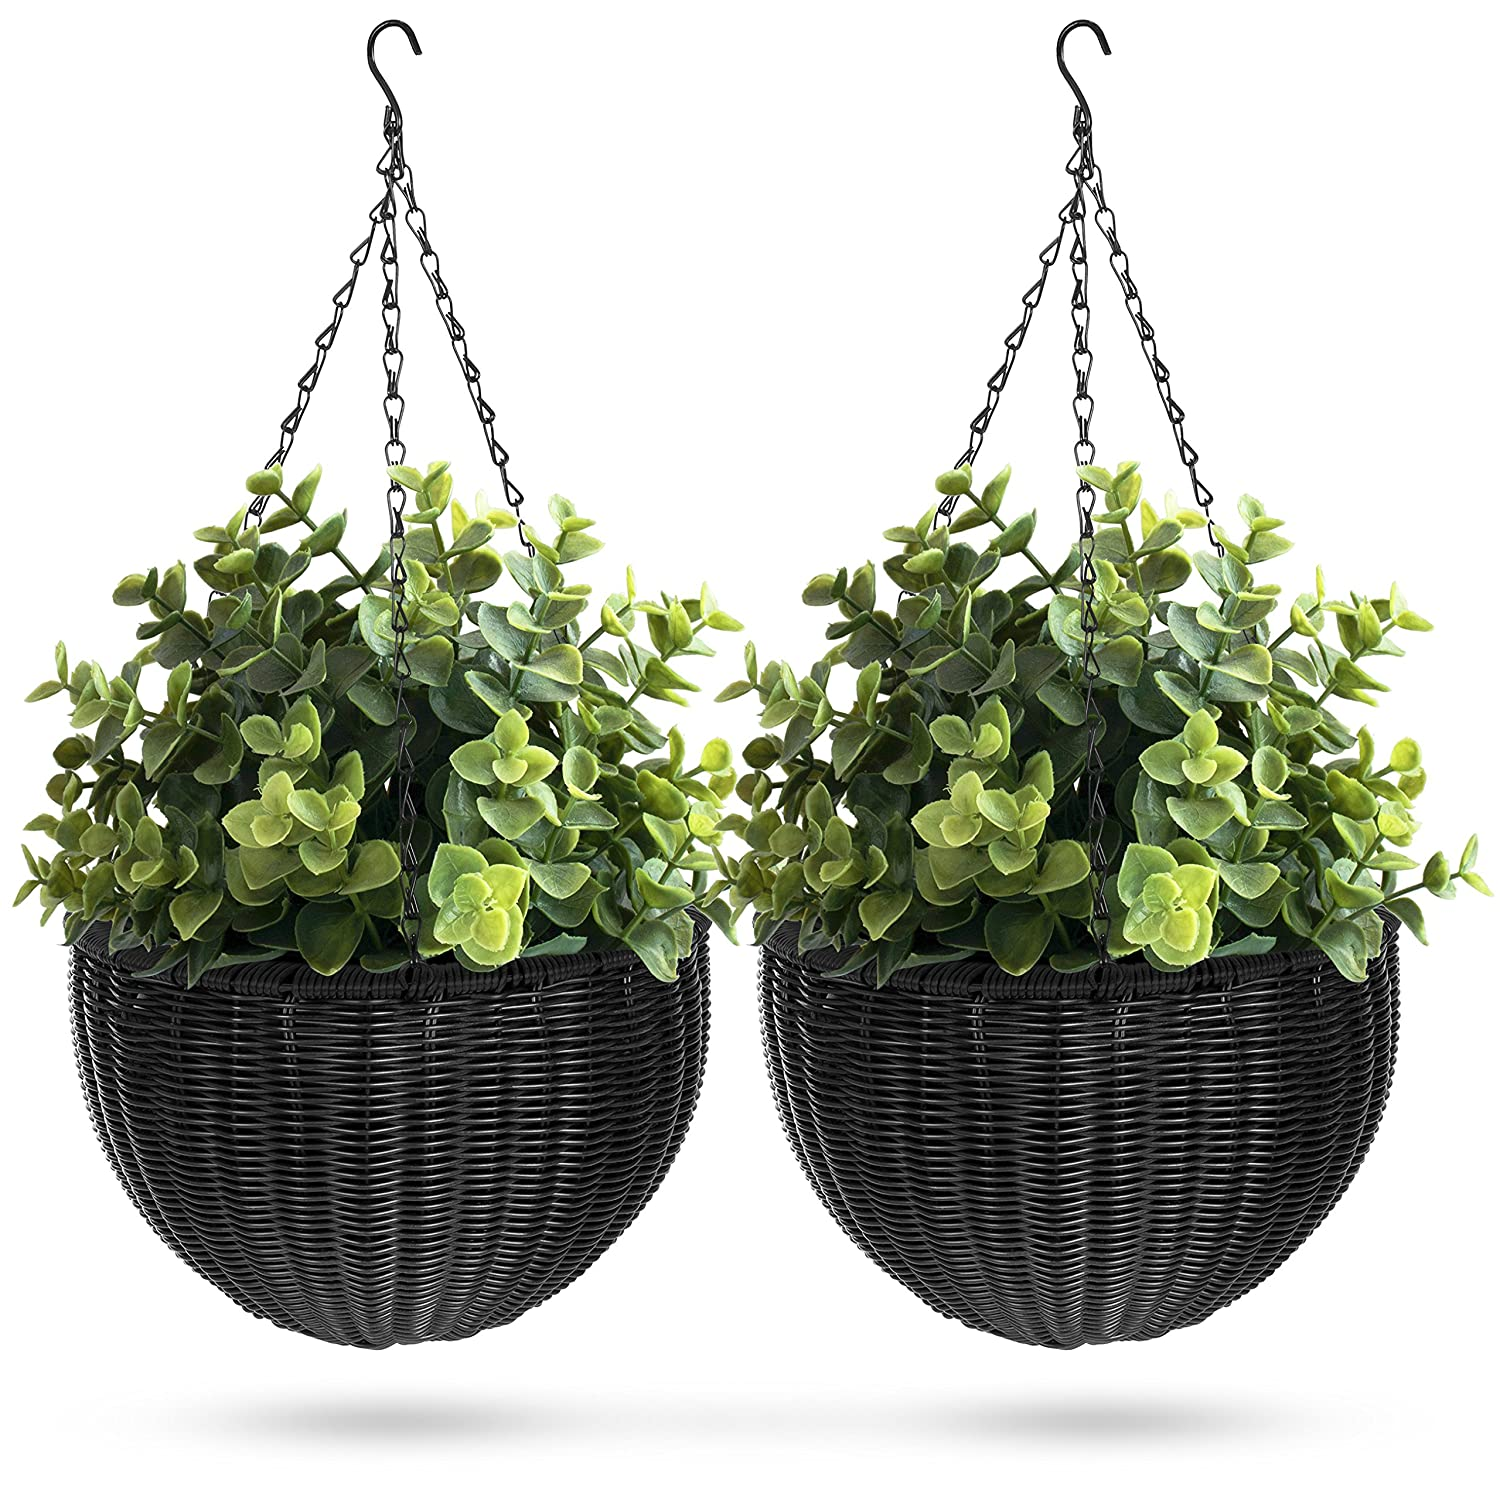 Best Choice Products Set of 2 Patio Round Garden Wicker Rattan Pot Hanging Planters w Triple-Chain Hanger, Black